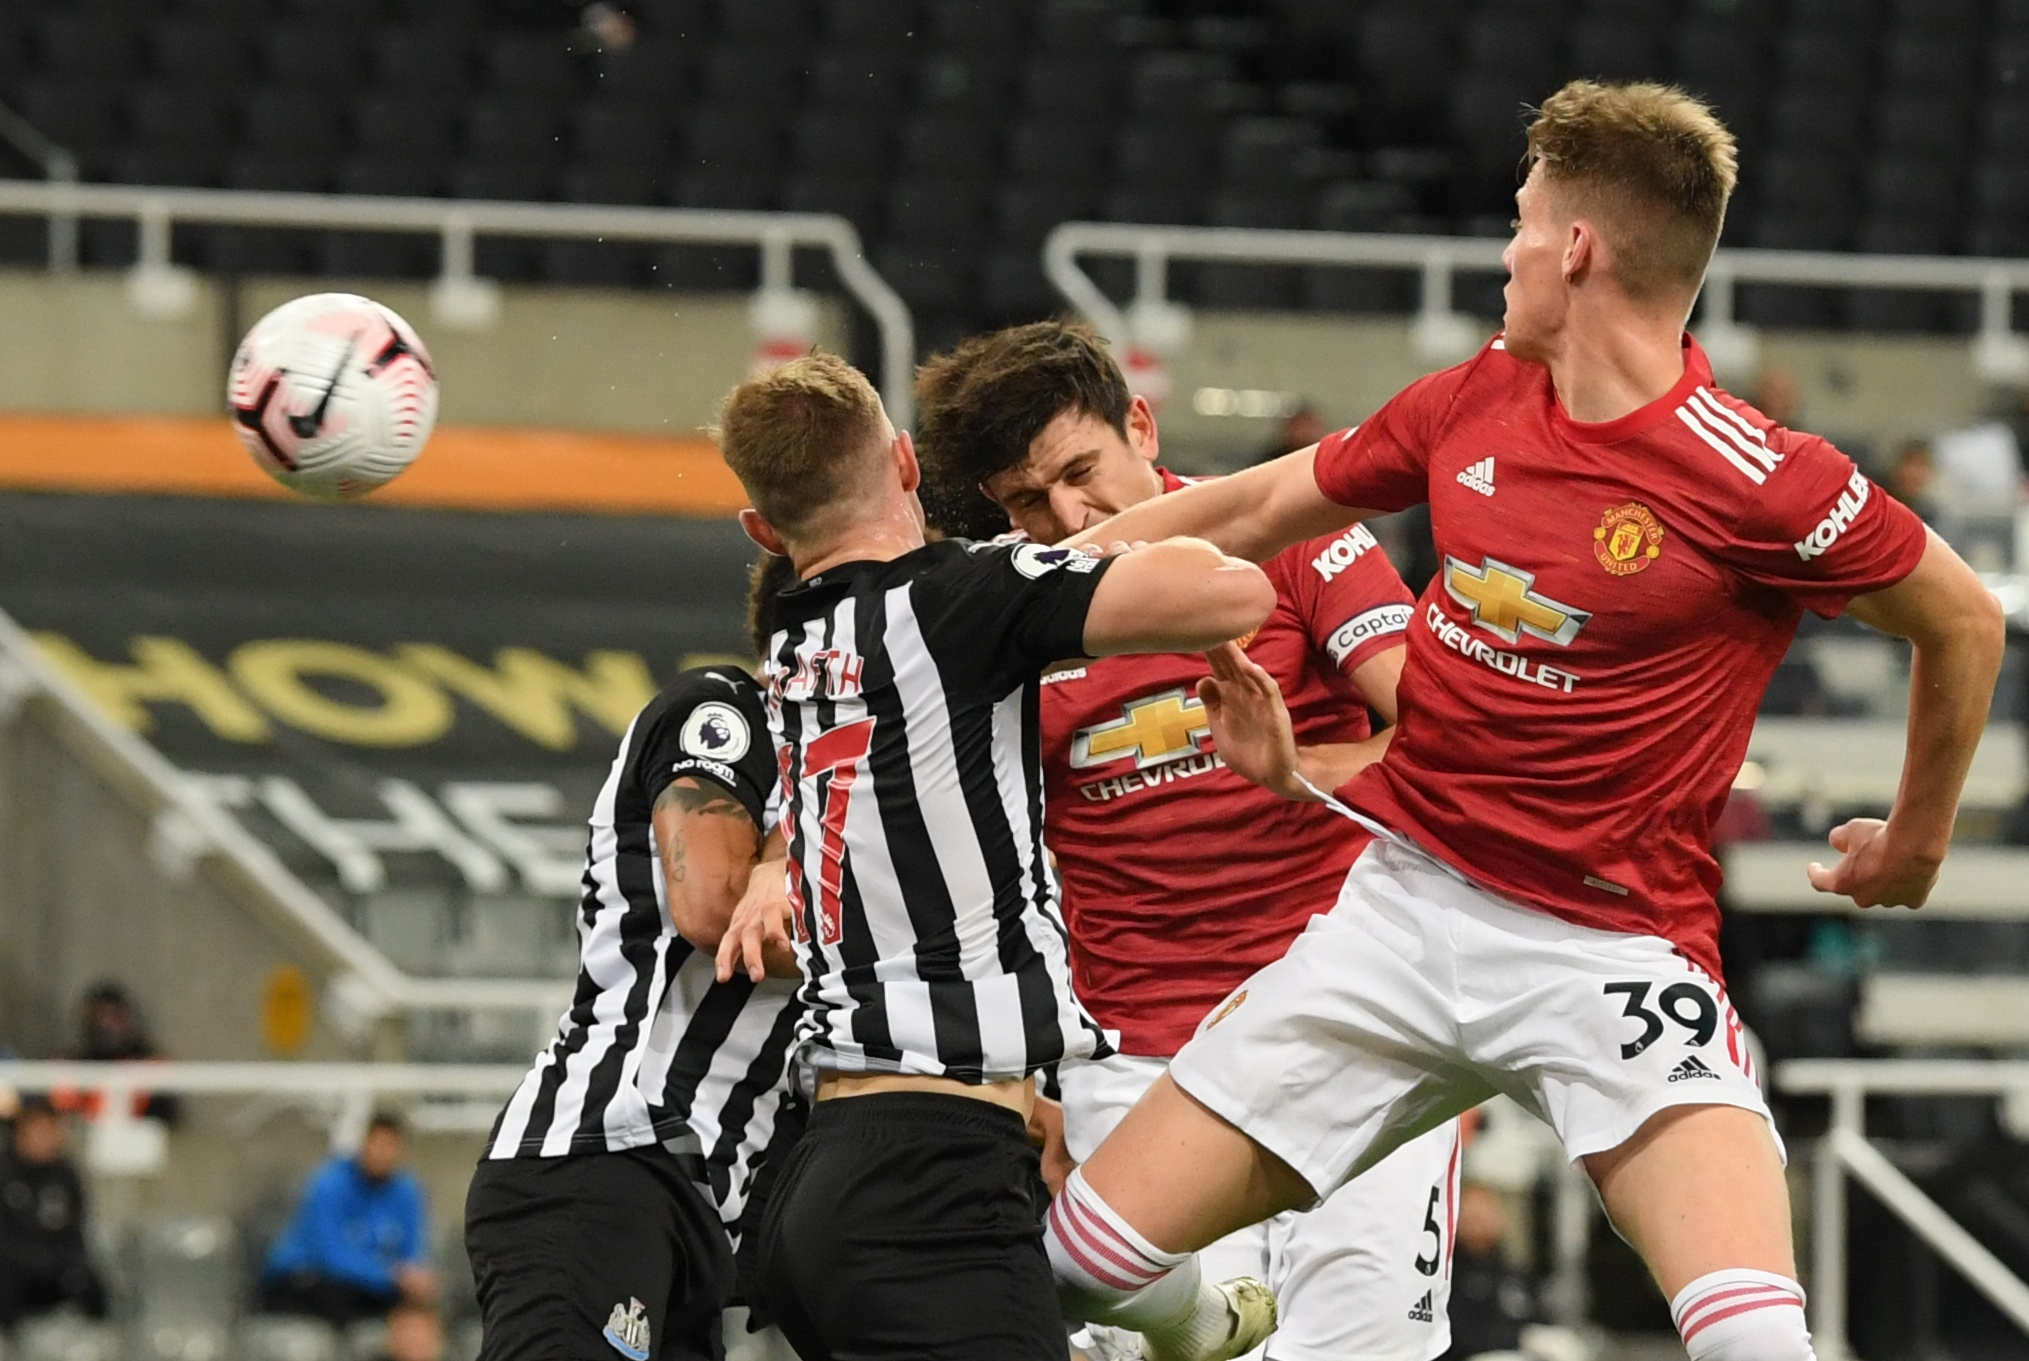 Newcastle 1 Man Utd 4: Bruno Fernandes sparks late surge with stunner after first penalty miss